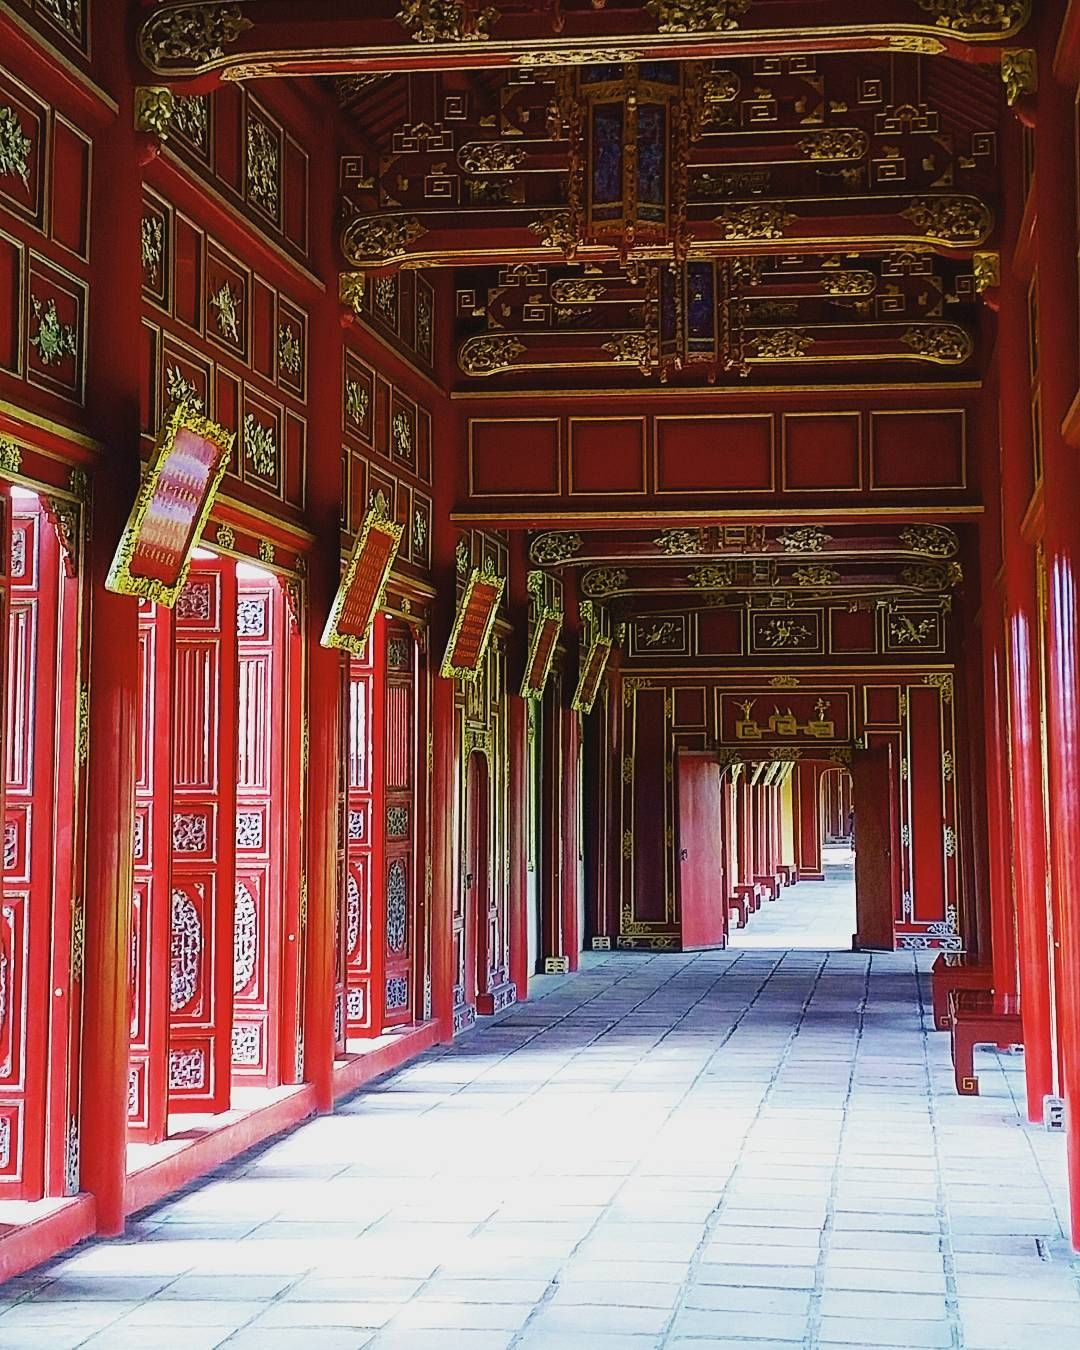 #hue #palace #king #capital #river #local #vietnam #vietnamese #lifegourmets #travel #traveling #TFLers #vacation #visiting #instatravel #instago #instagood #trip #holiday #photooftheday #fun #travelling #tourism #tourist #instapassport #instatraveling #mytravelgram #travelgram #travelingram #igtravel